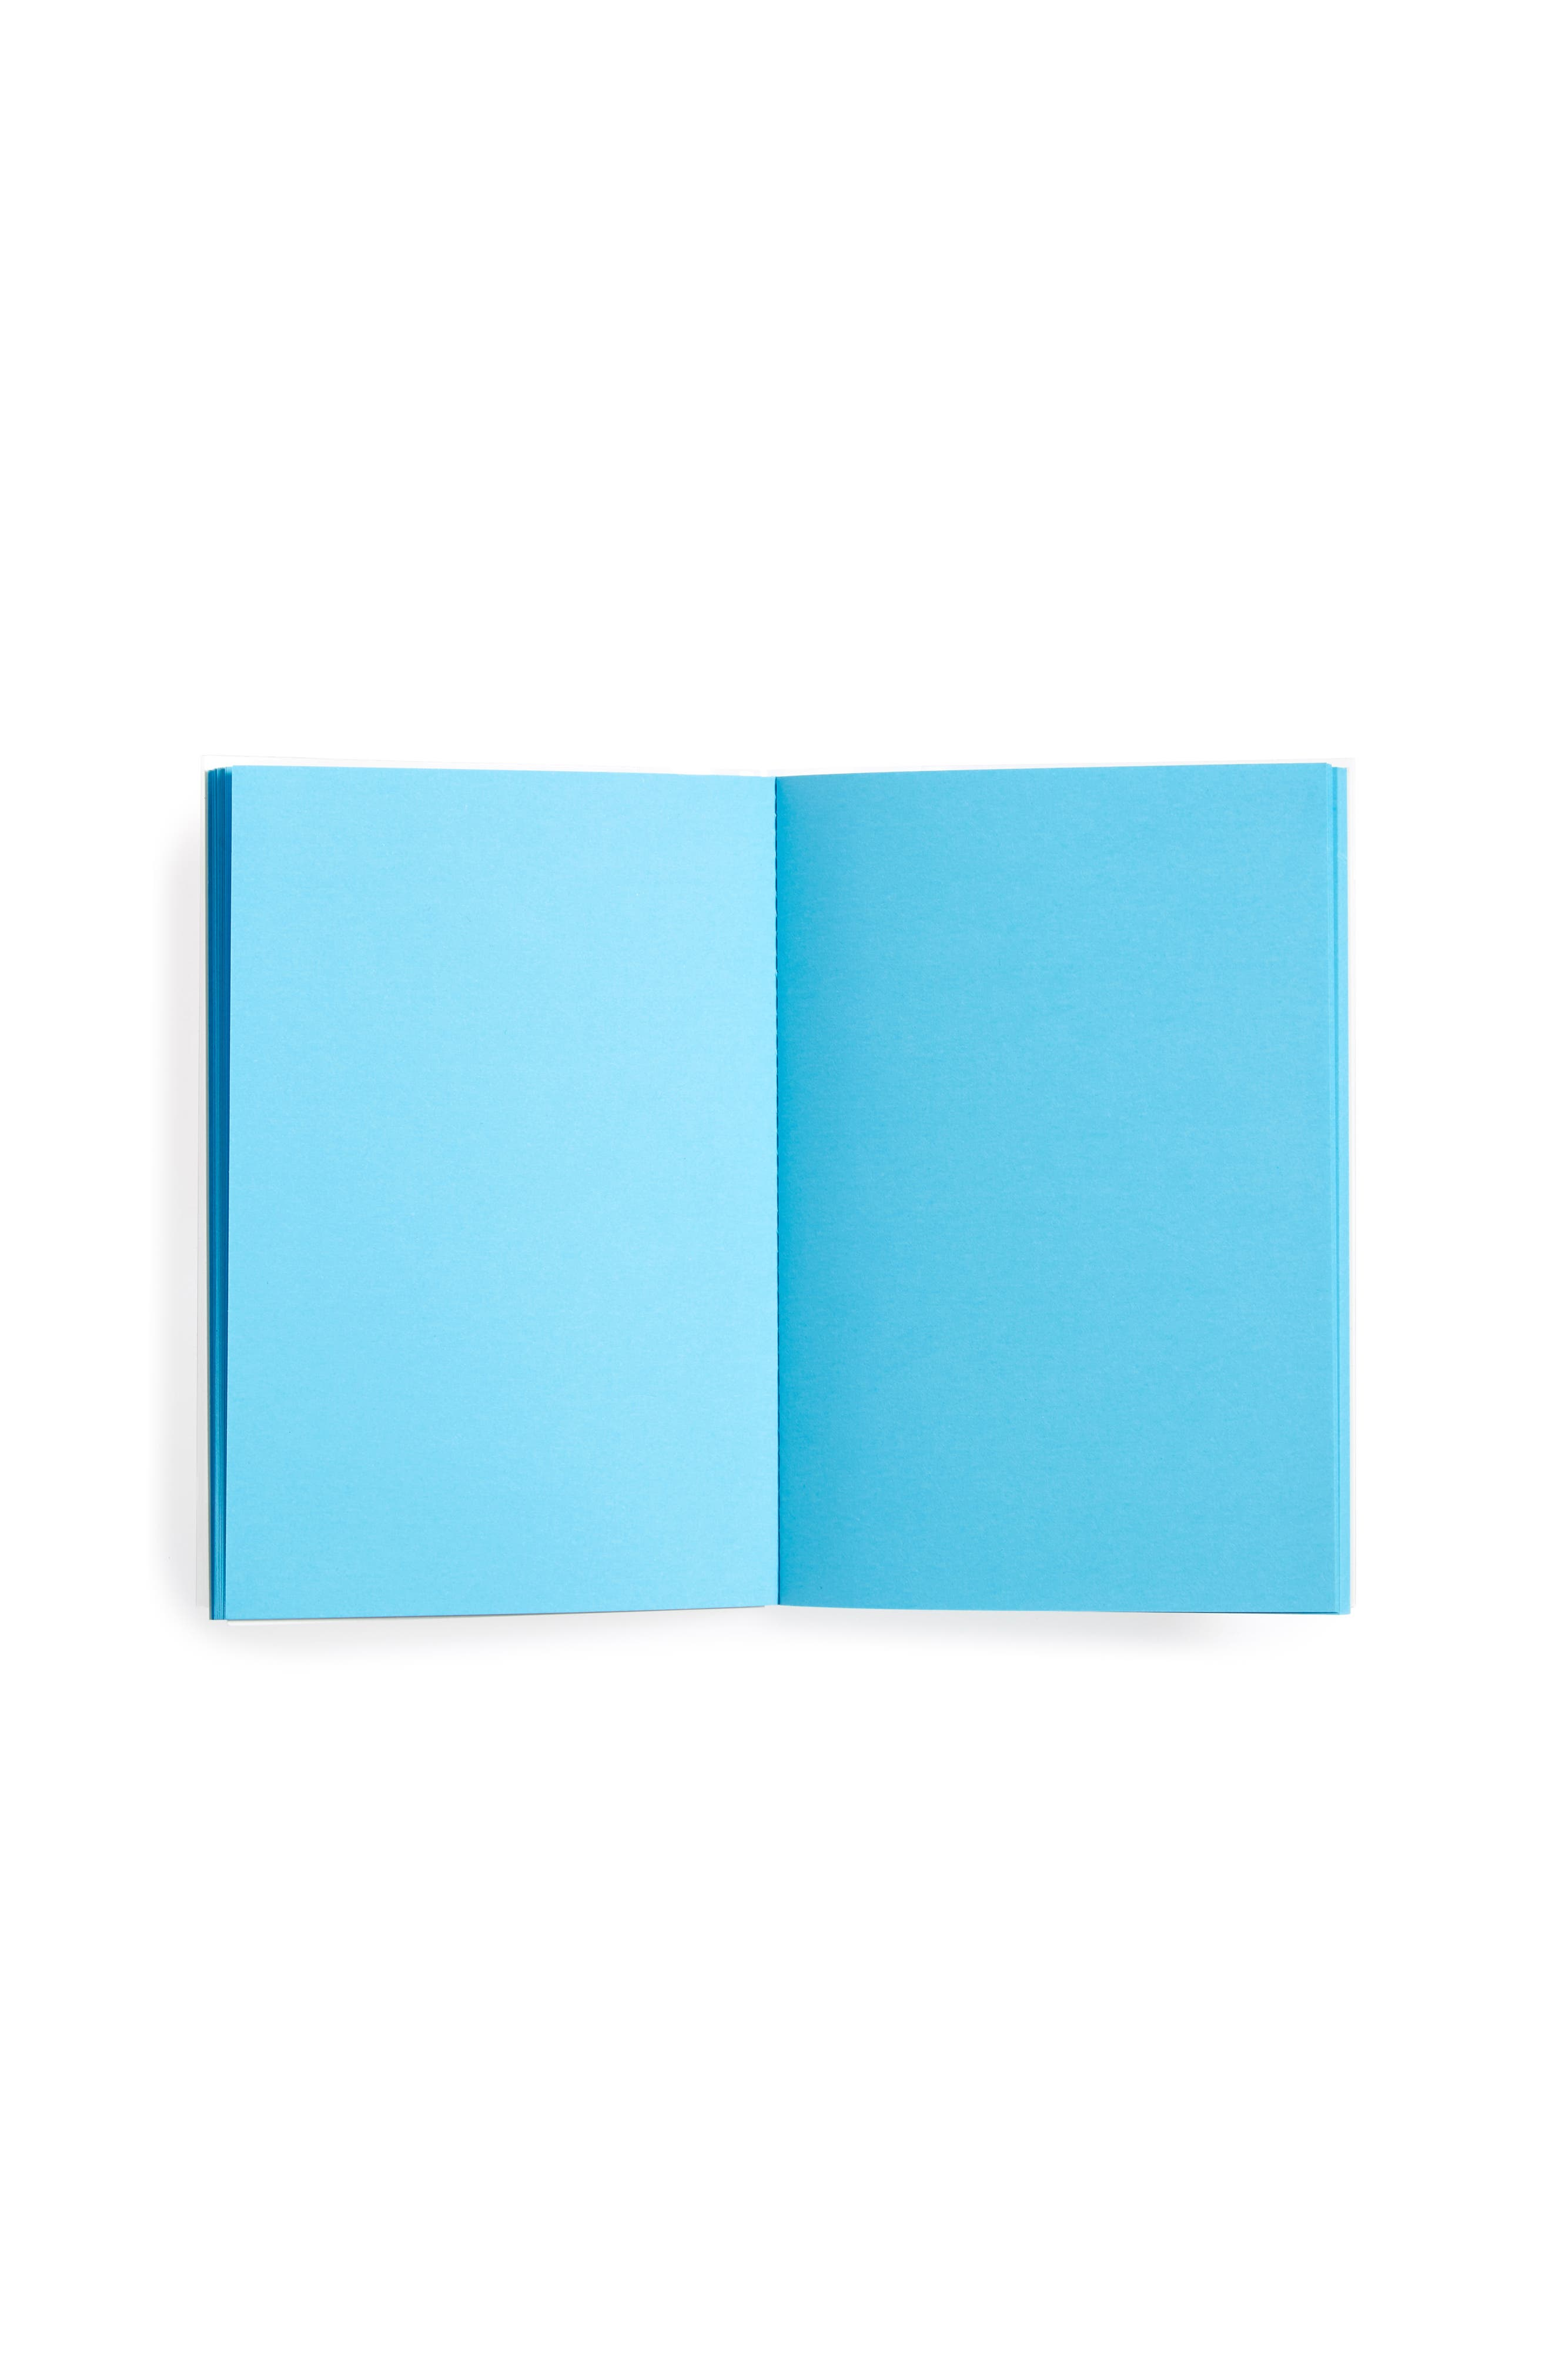 Alternate Image 2  - MoMA Design Store Nathalie Du Pasquier For Rubberband Small Notebook